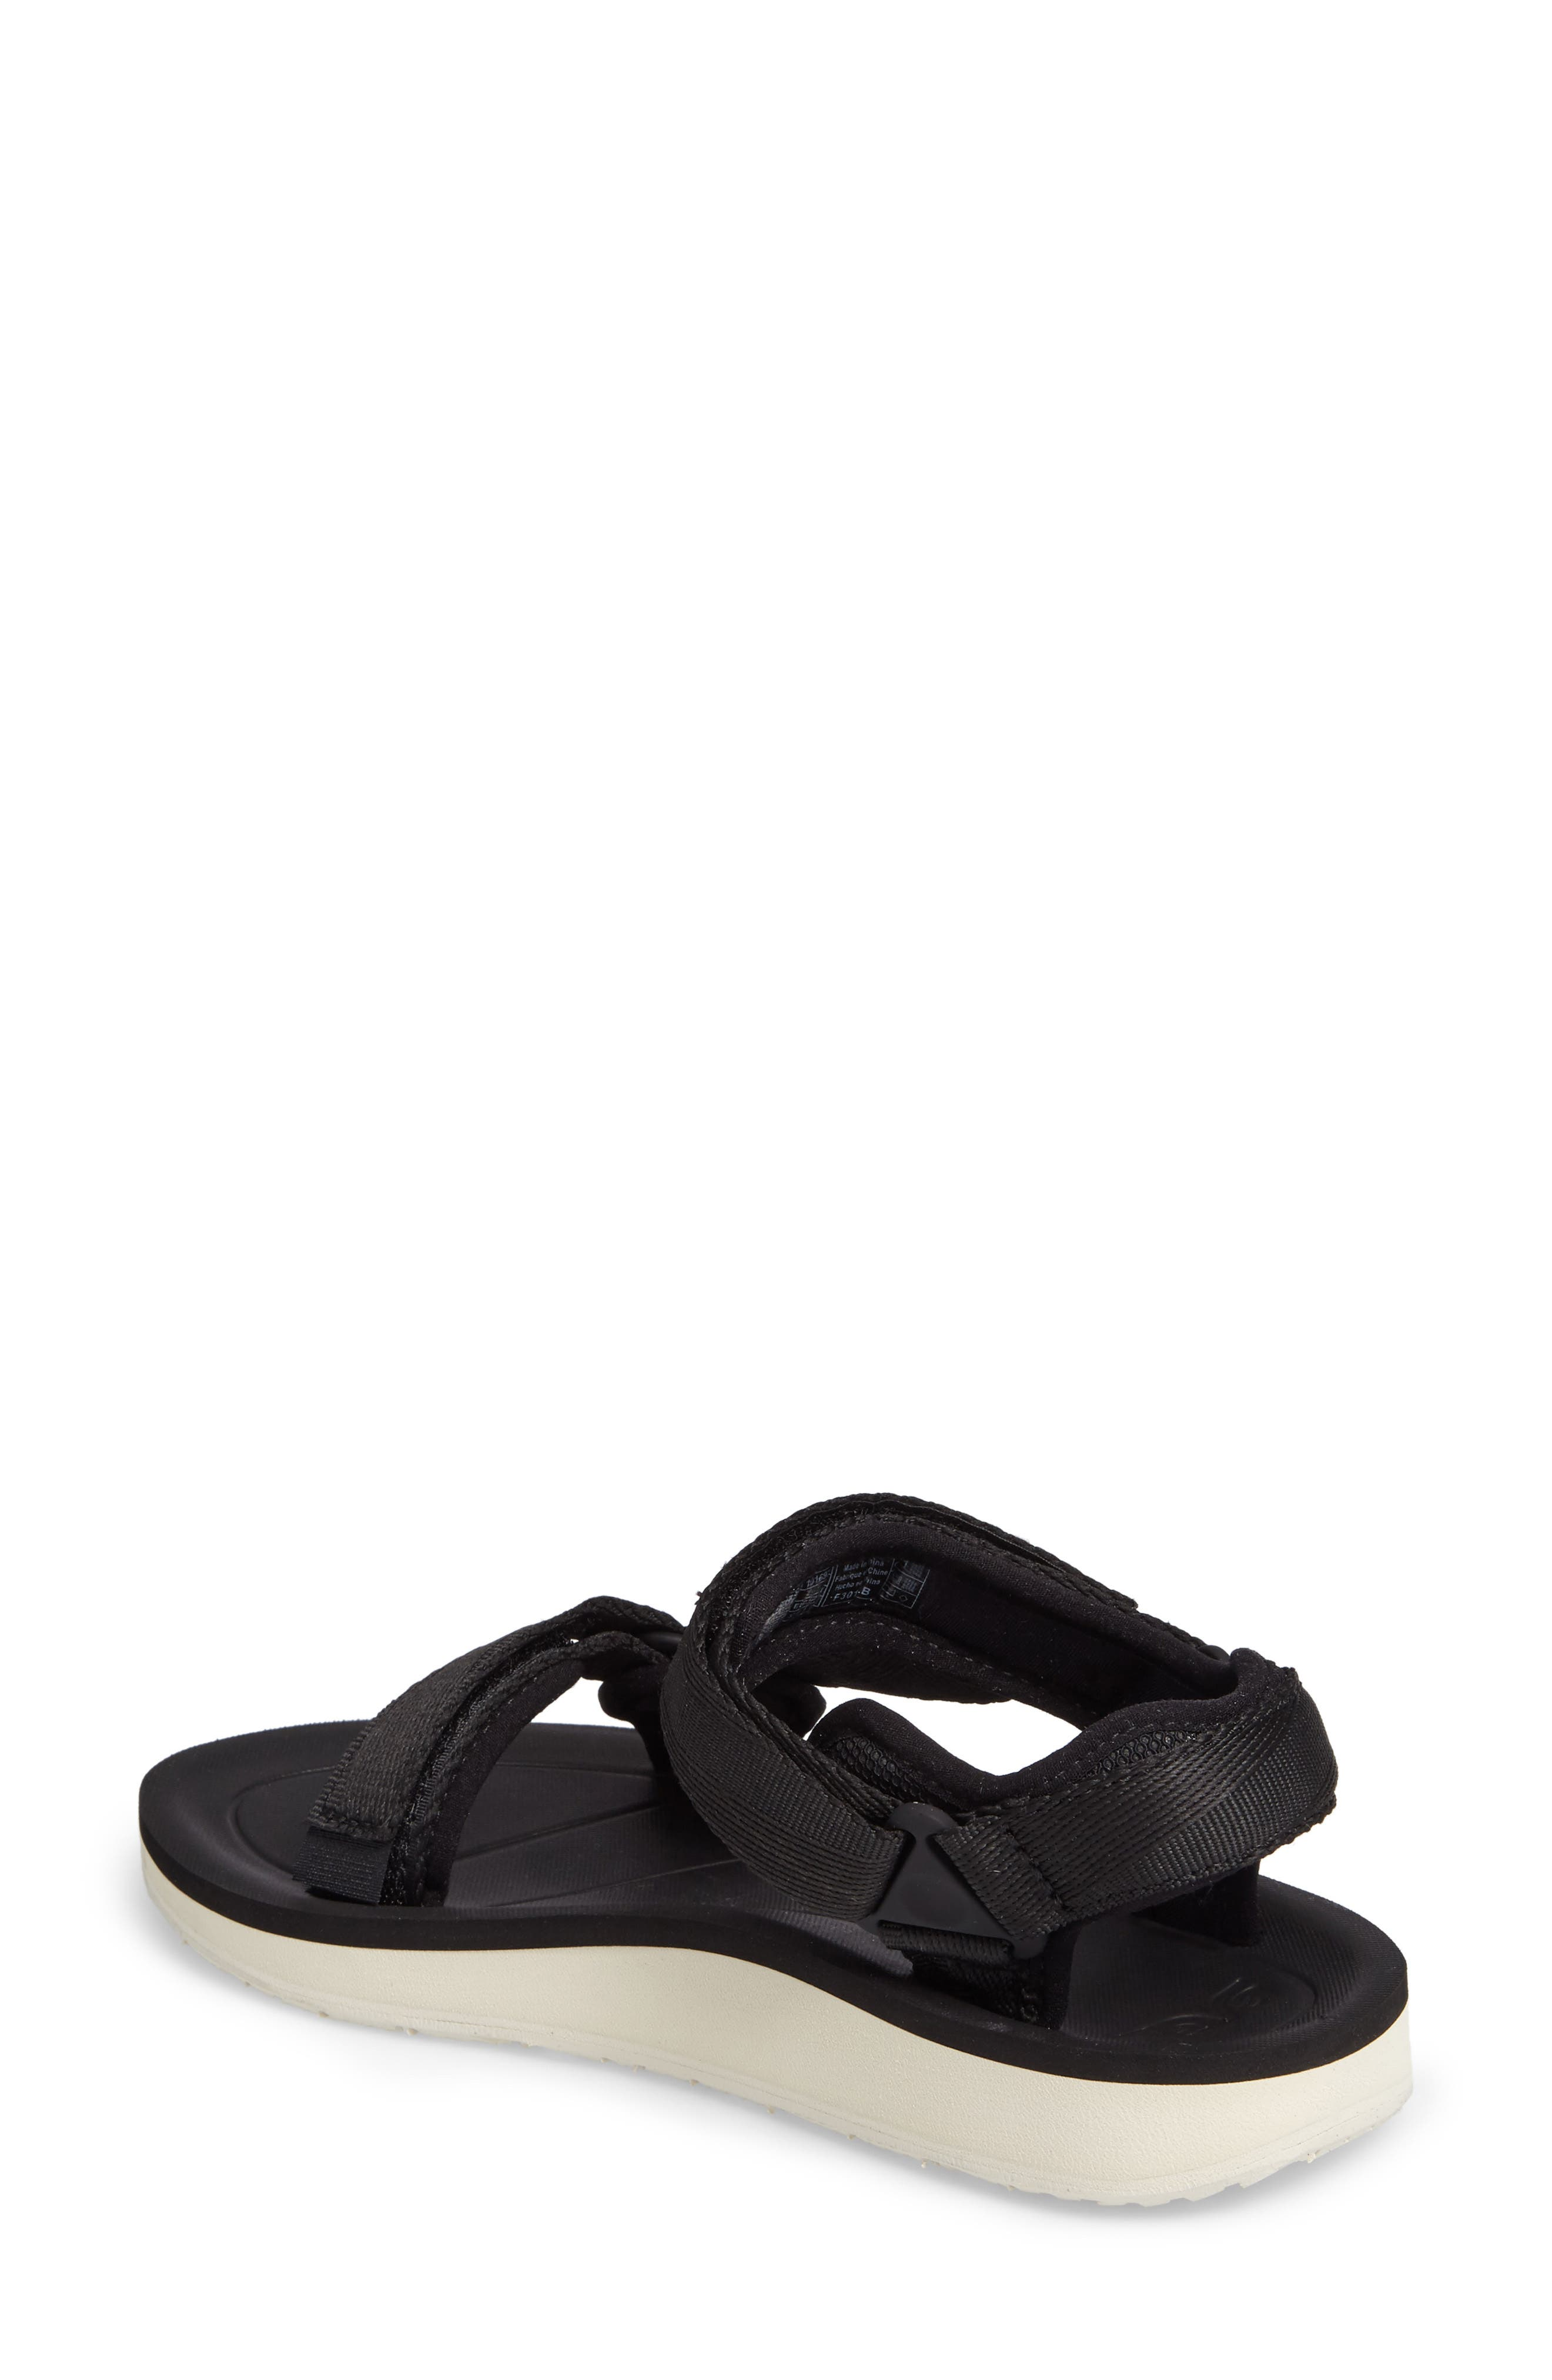 Original Universal Premier Sandal,                             Alternate thumbnail 2, color,                             BLACK FABRIC